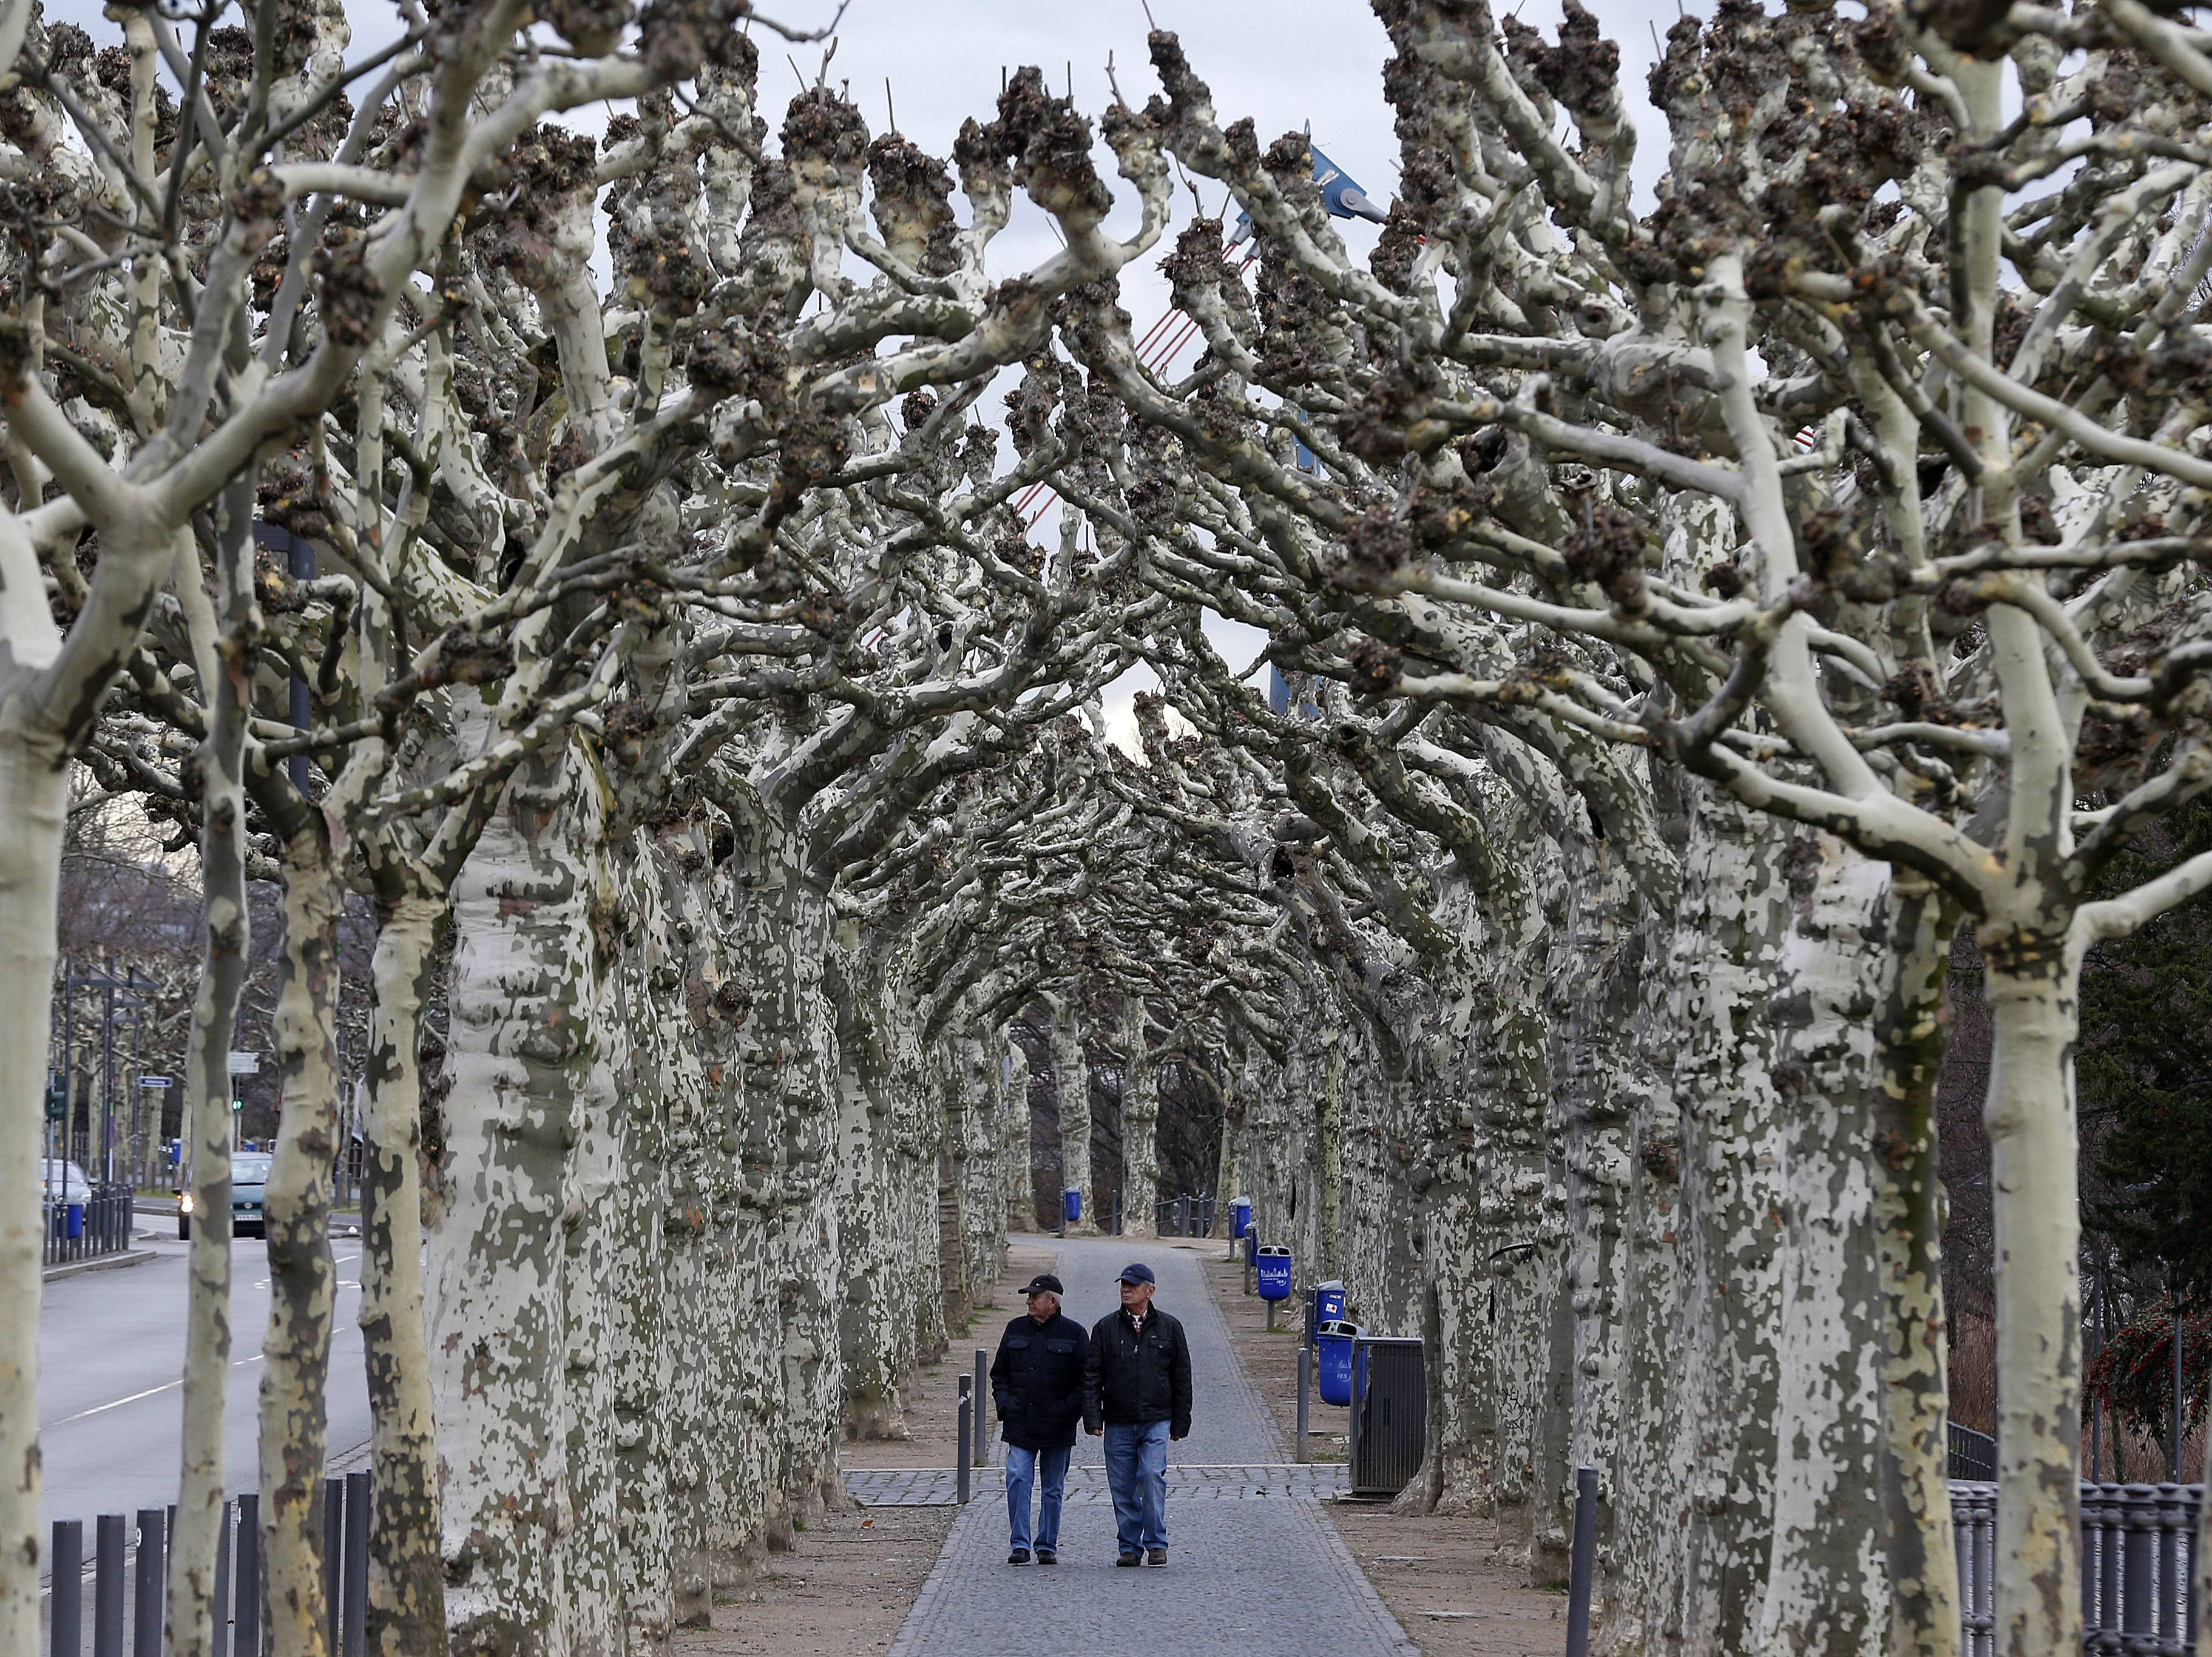 Two men walk along an alley of plane trees in Frankfurt, Germany, Friday, Feb. 7, 2014. Mild temperatures and strong winds are forecast for Germany for the next days.